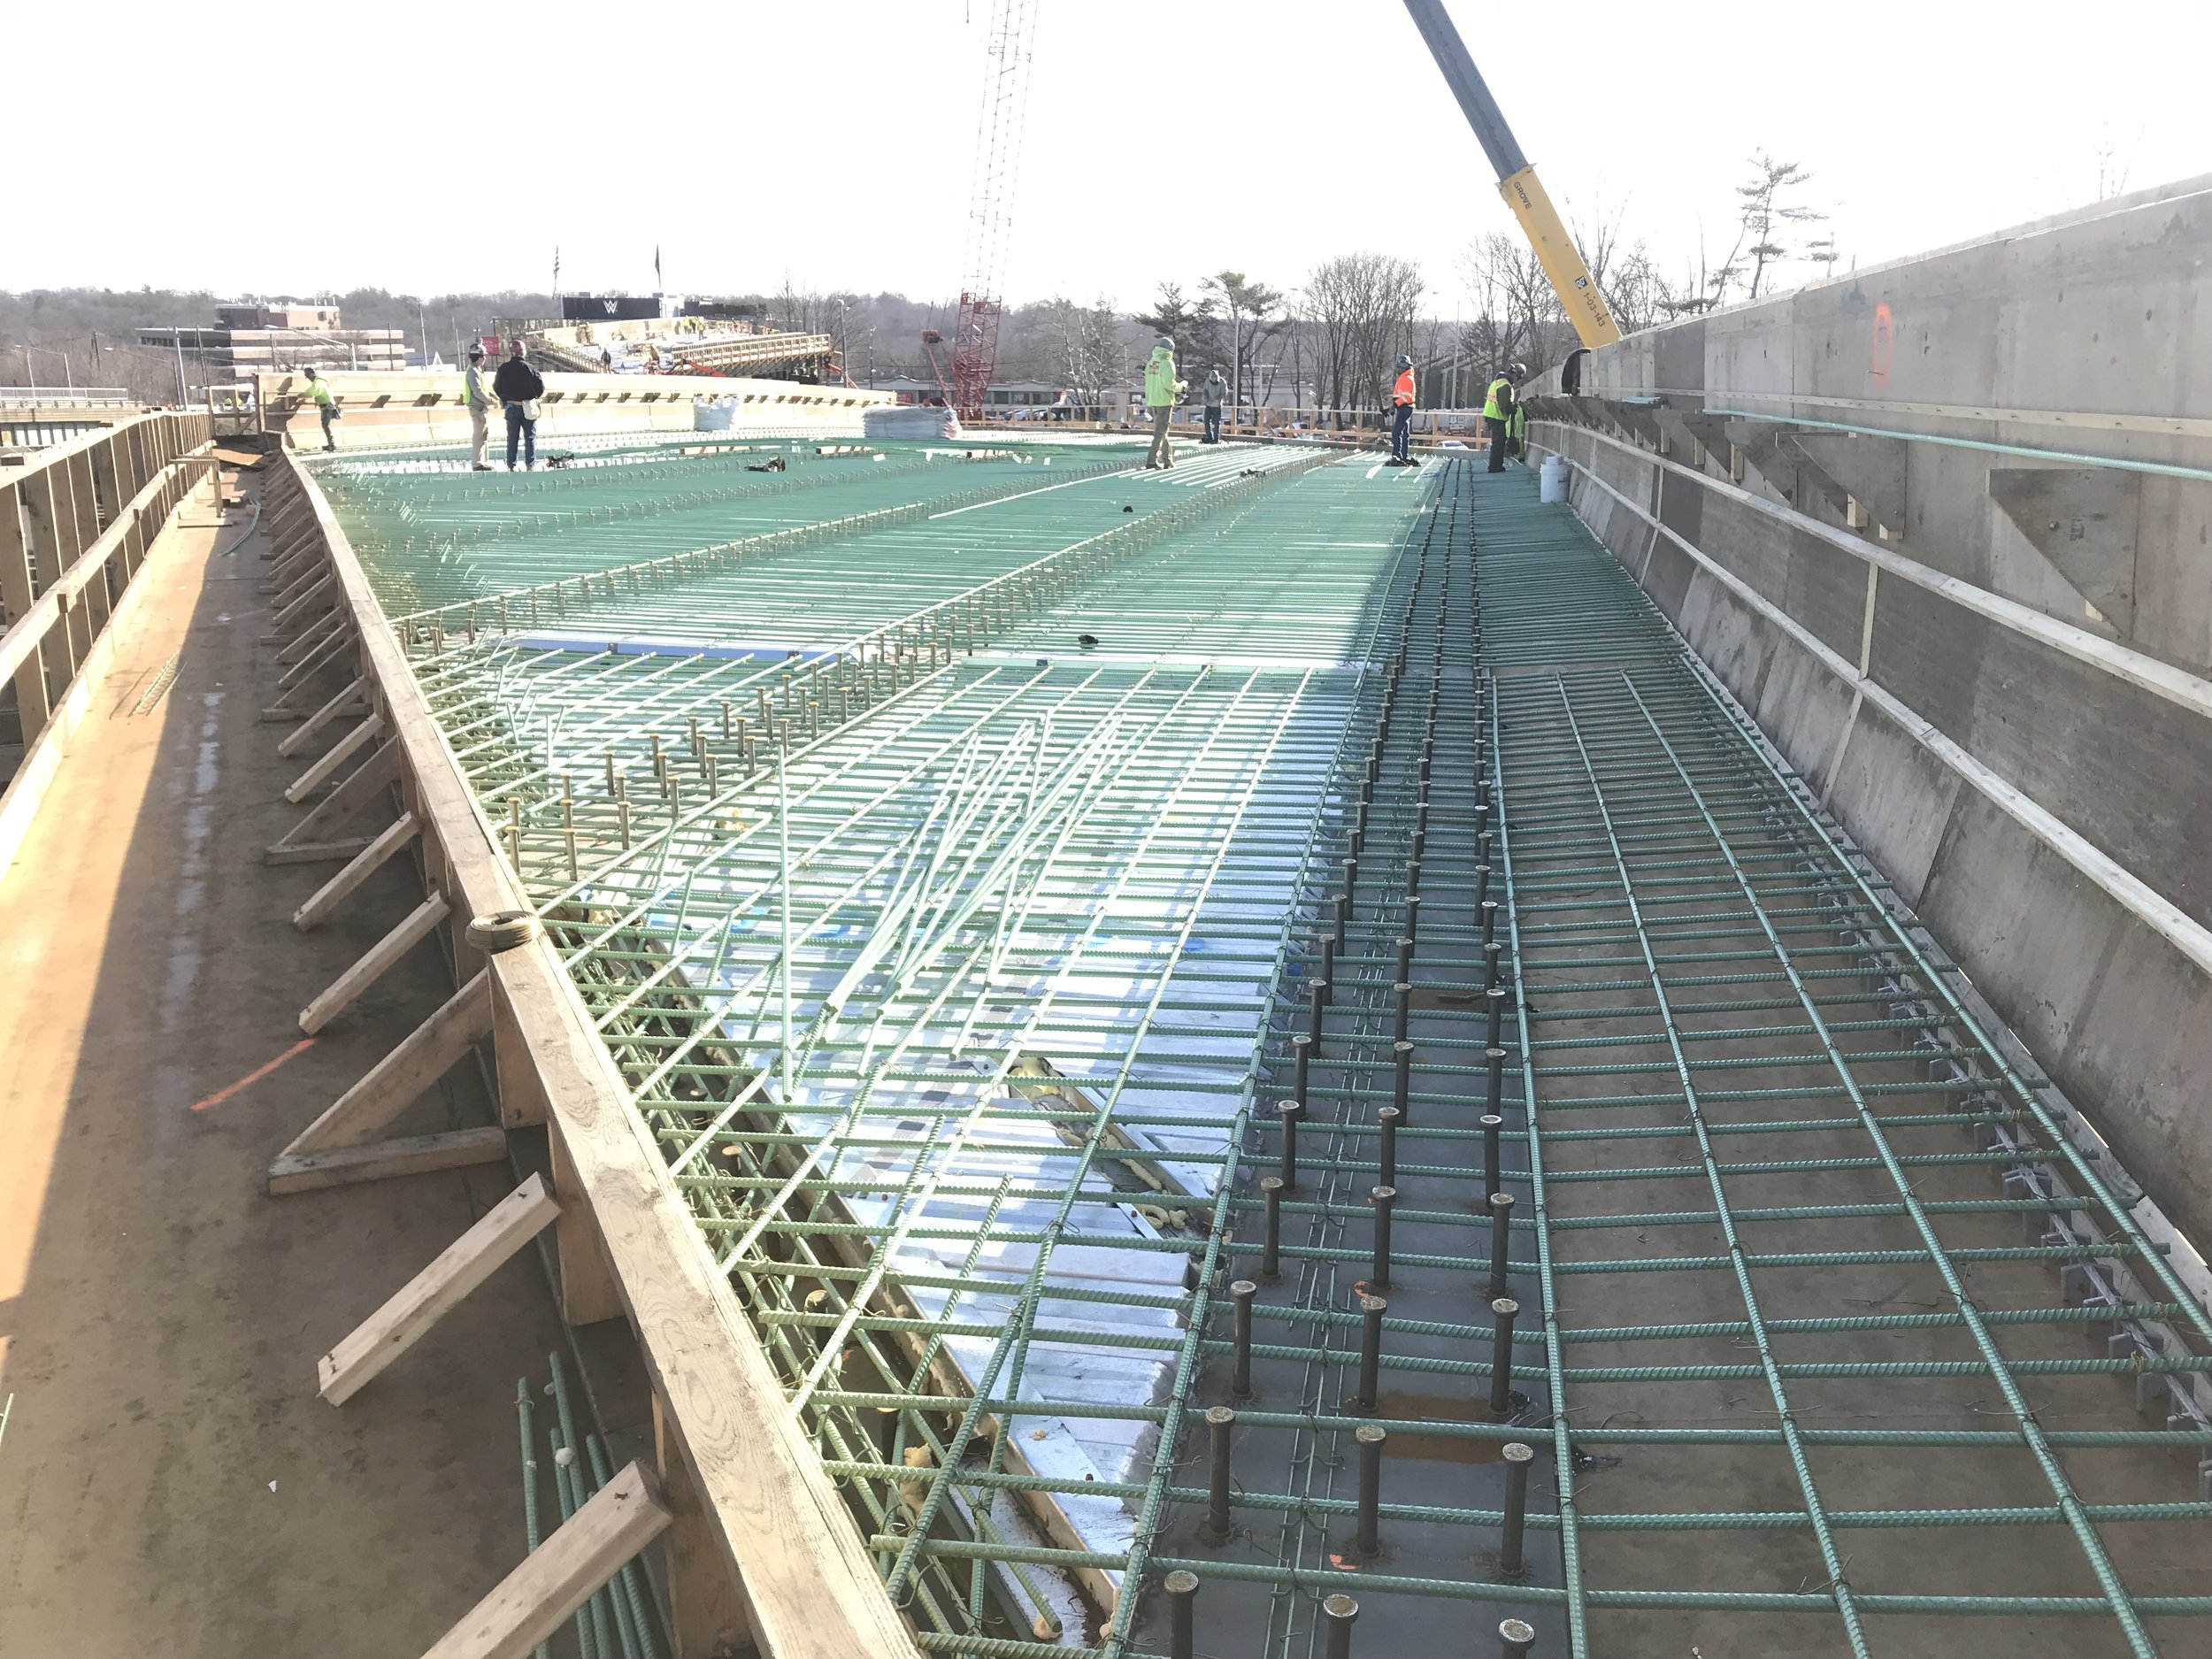 Ironworkers are installing the bottom mat of epoxy rebar for Span 2. Each bridge deck has two levels of epoxy rebar and the bottom mat alone weights 40,000 lbs!  Taken on 3/28/19 by Yousif Abdulla